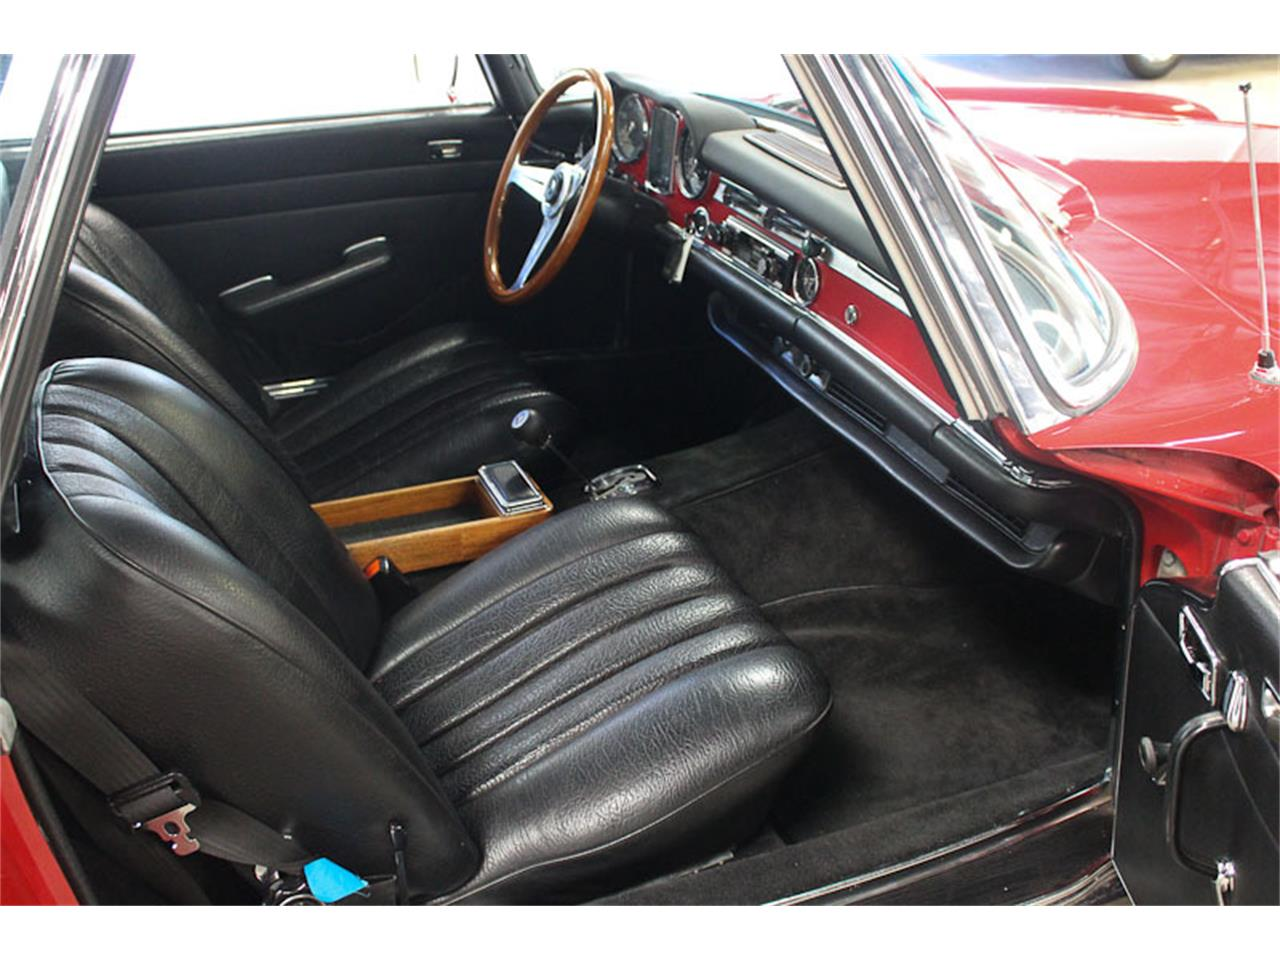 1970 Mercedes-Benz 280SL for sale in Fairfield, CA – photo 59